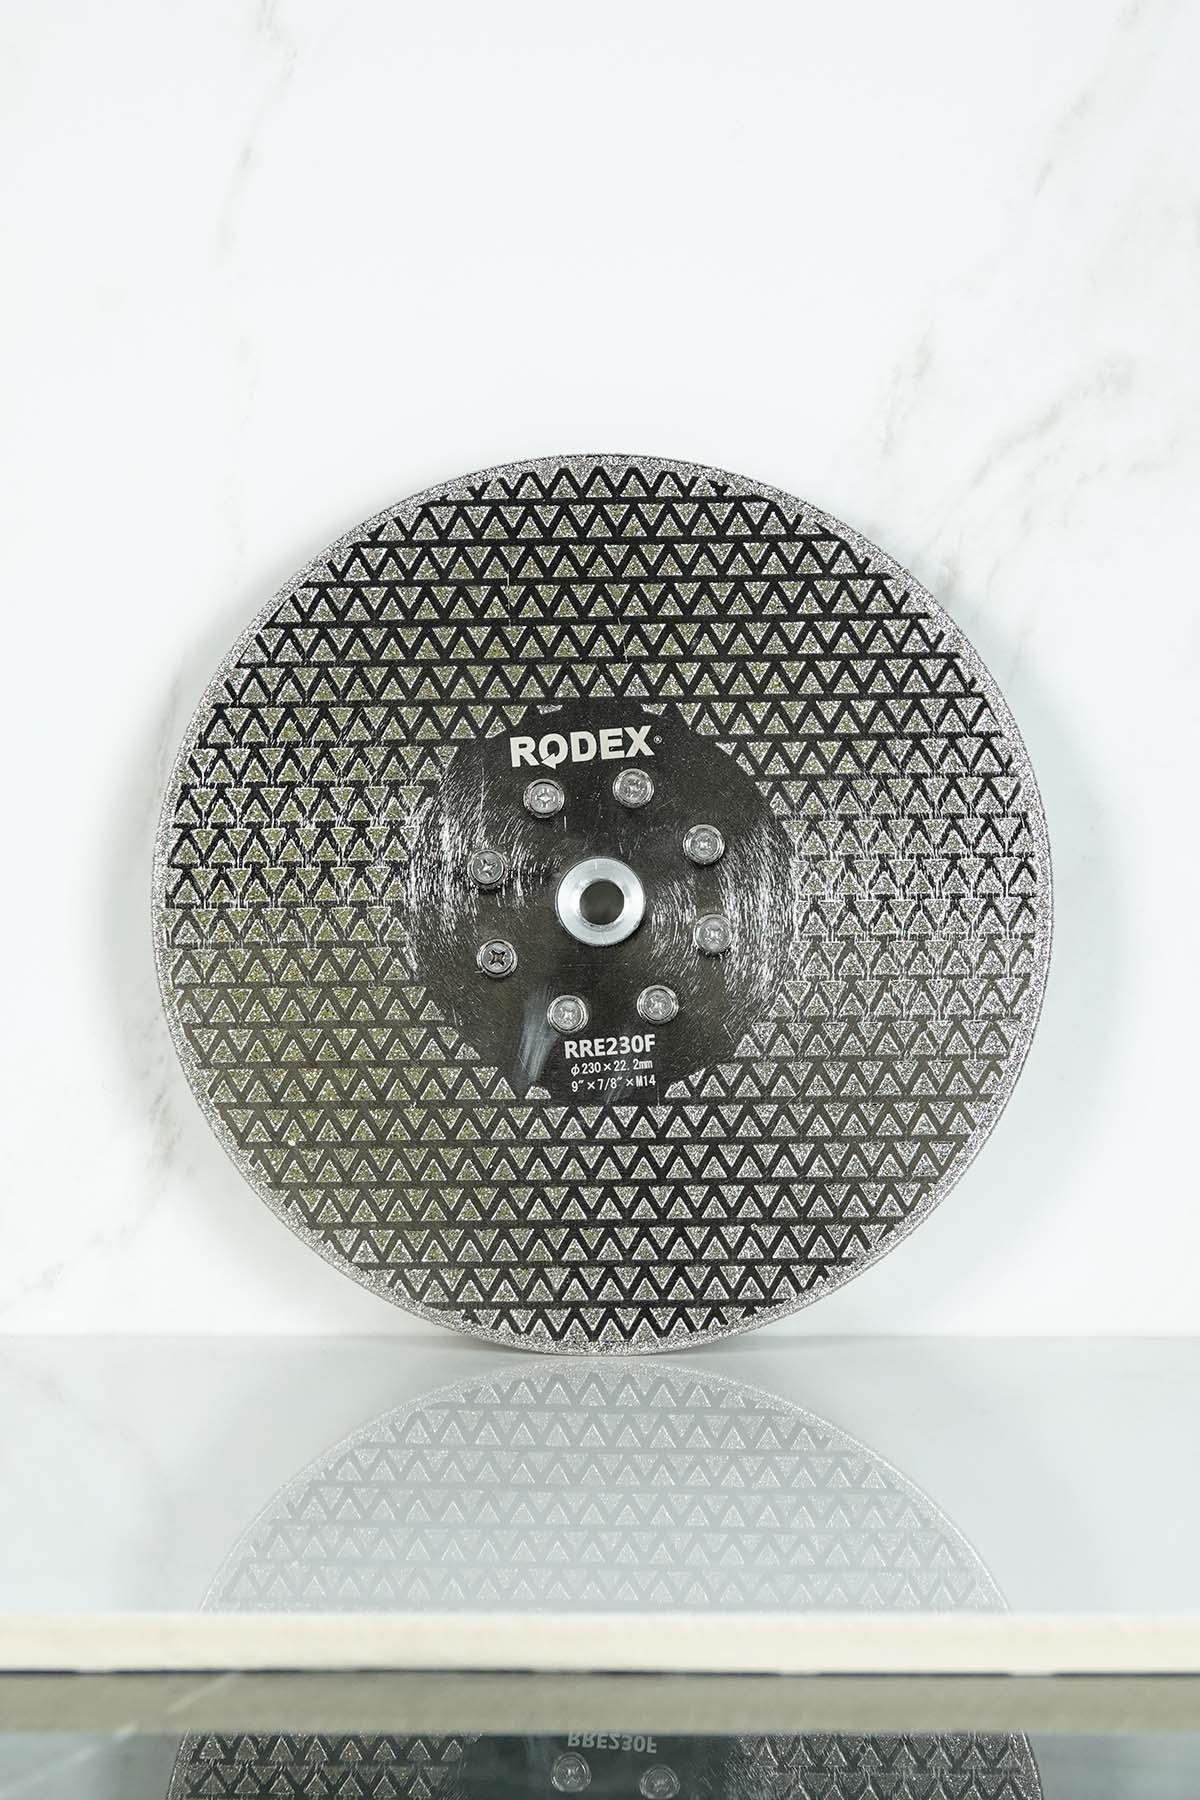 Rodex RRE230F Flanged Diamond Saw Blade for Marble, Granite, Porcelain 230mm